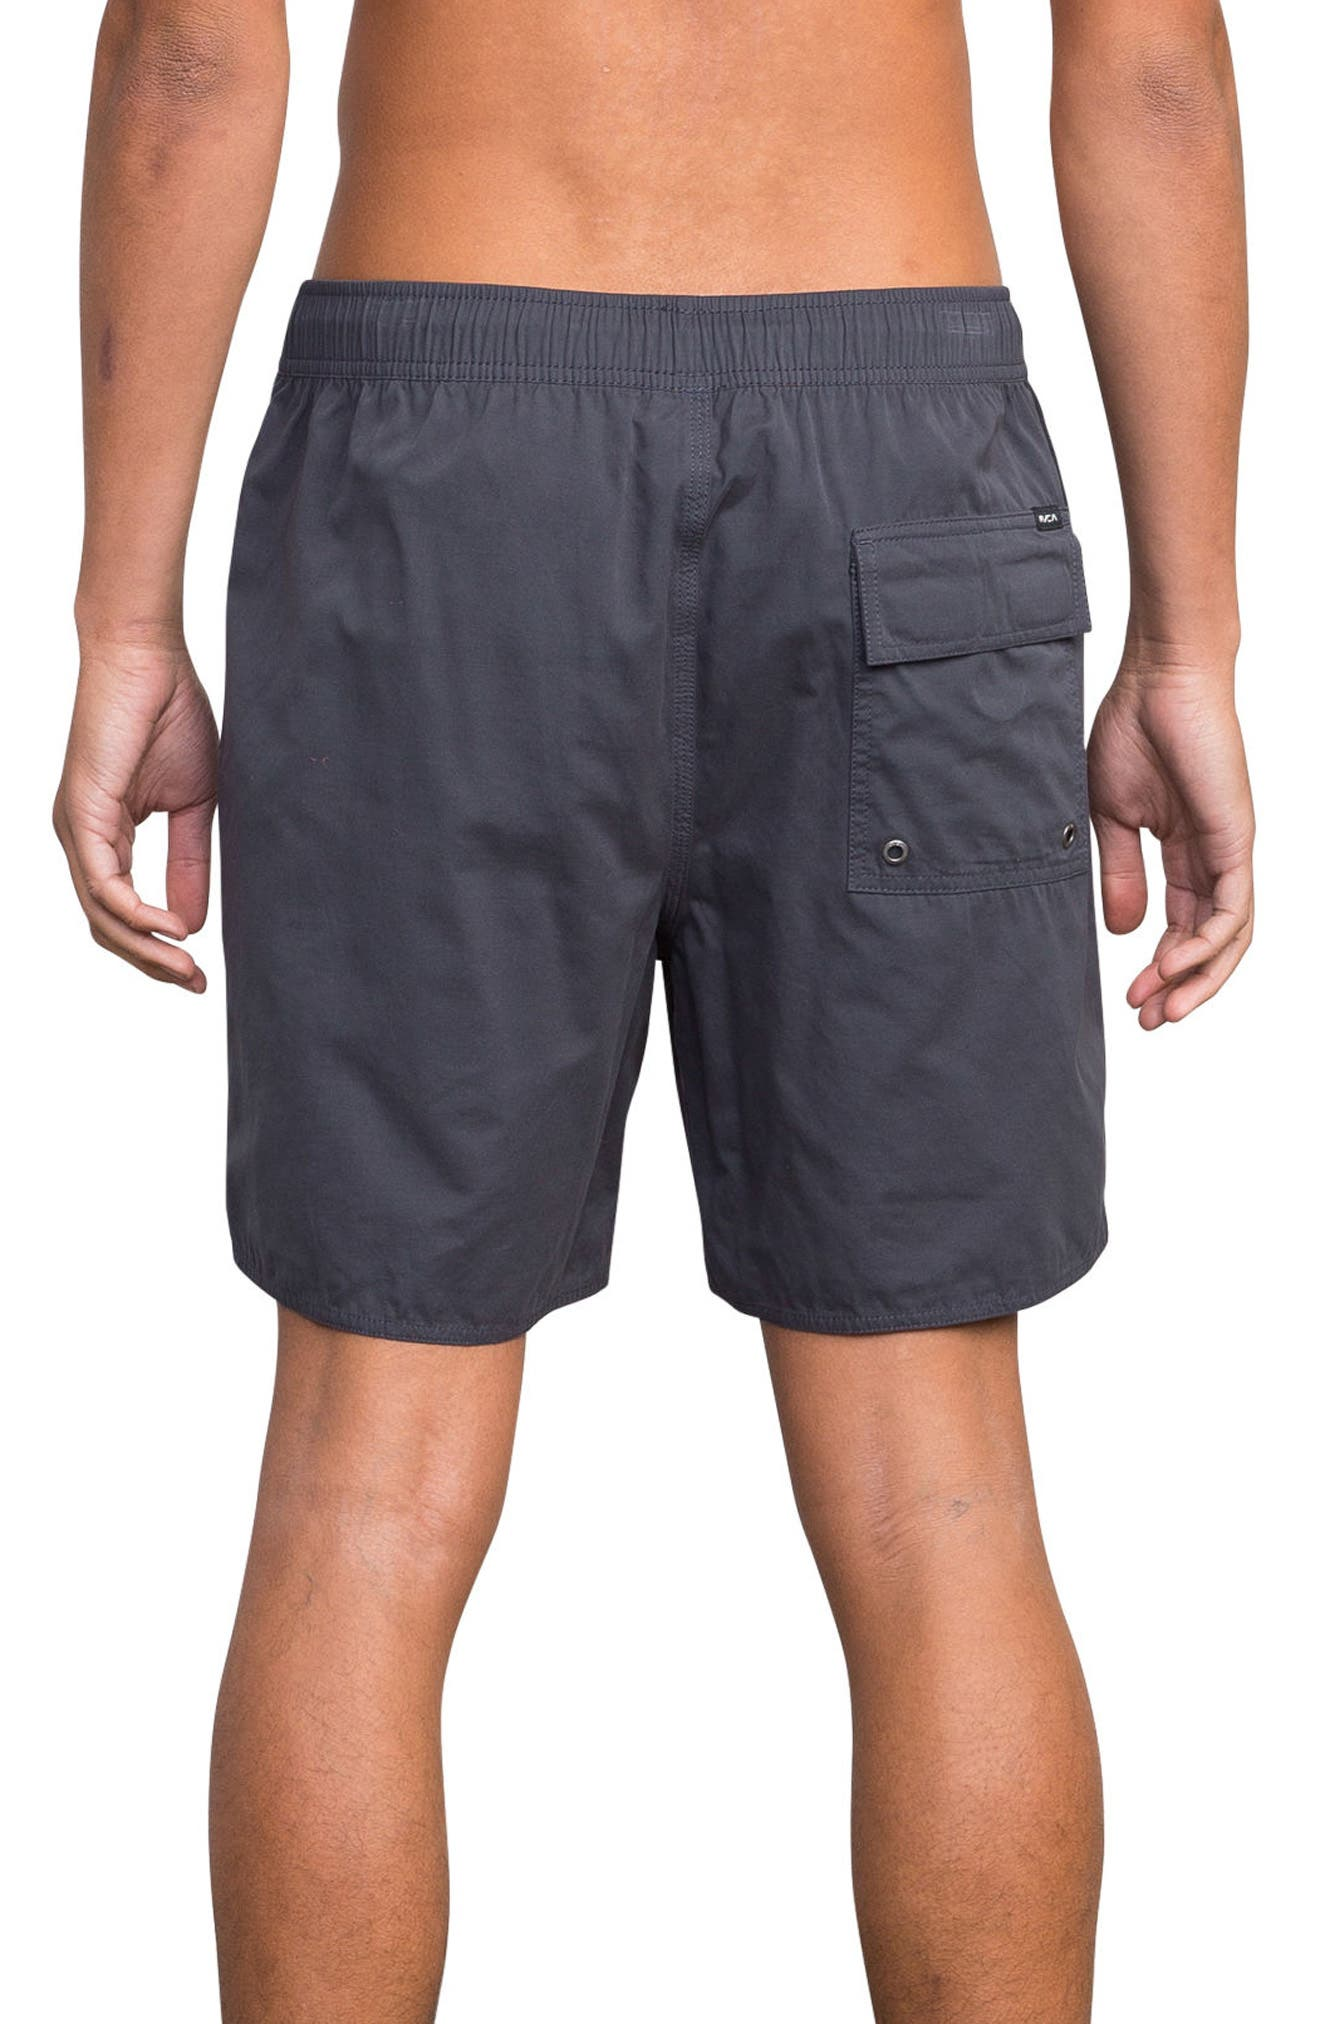 Horton Swim Trunks,                             Alternate thumbnail 2, color,                             SLATE